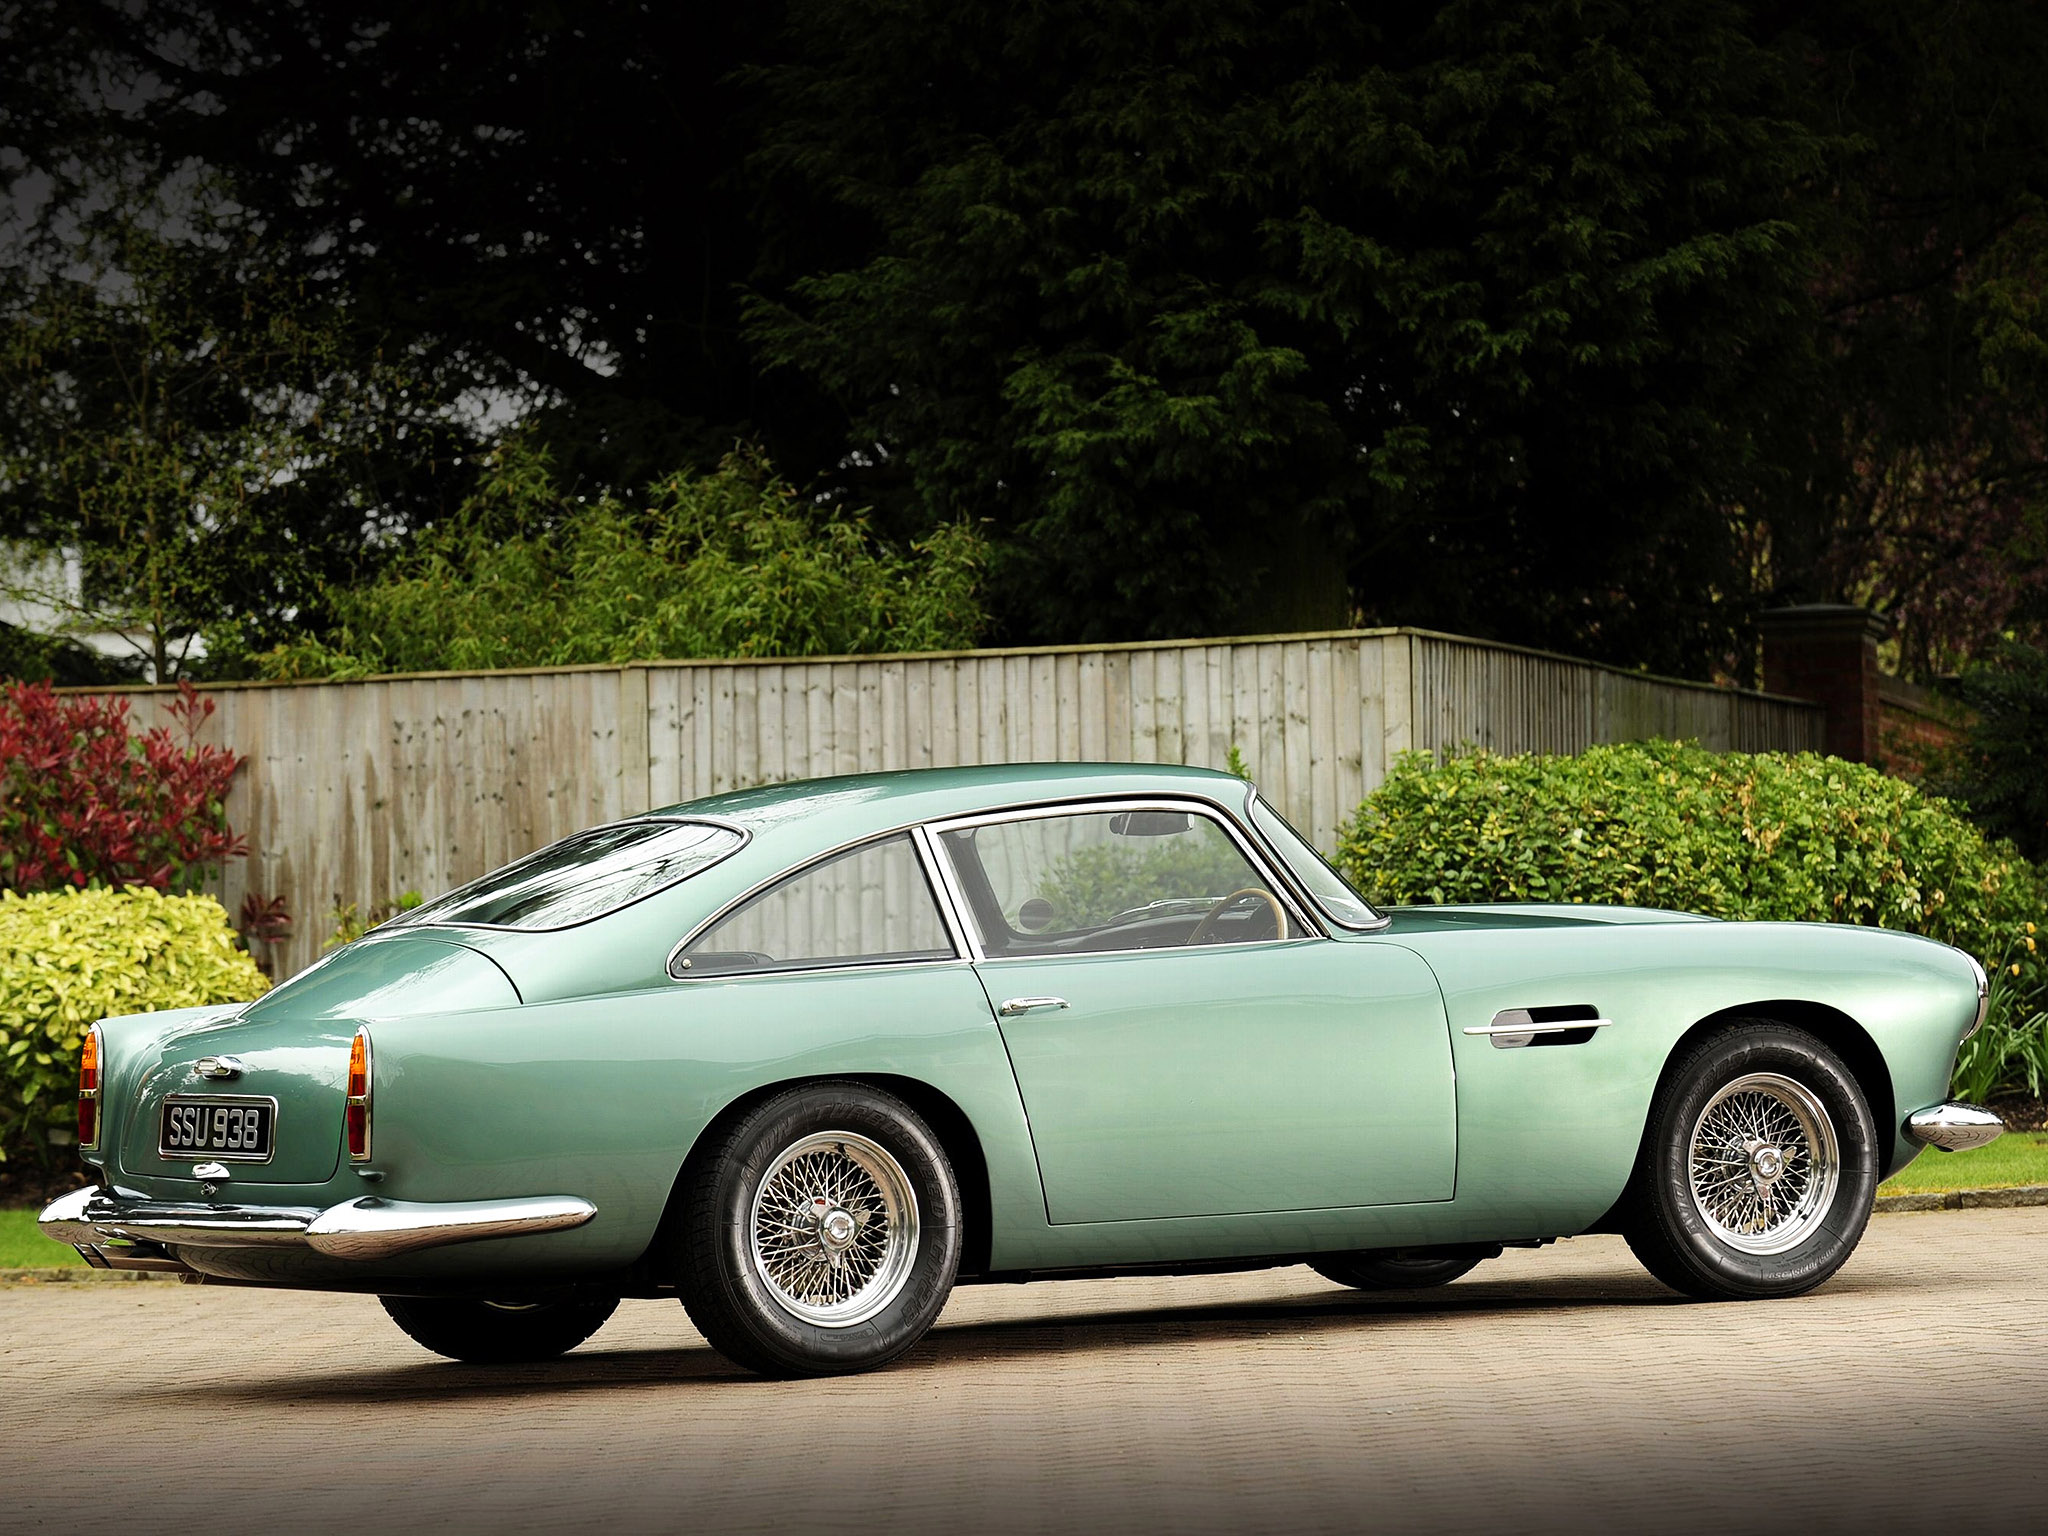 Aston Martin Db4 1958 1963 Photo 08 Car In Pictures Car Photo Gallery